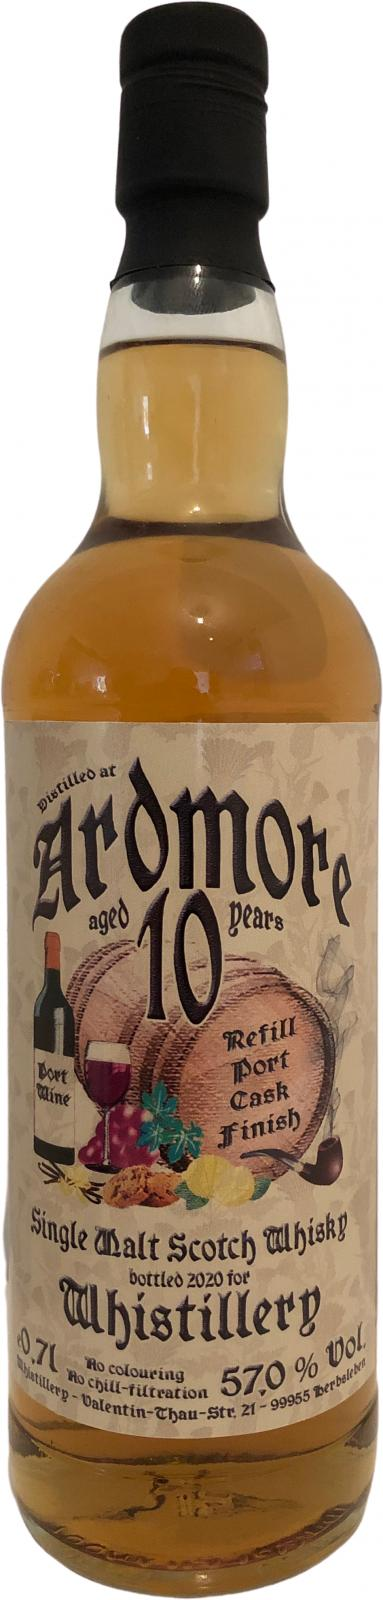 Ardmore 10-year-old UD